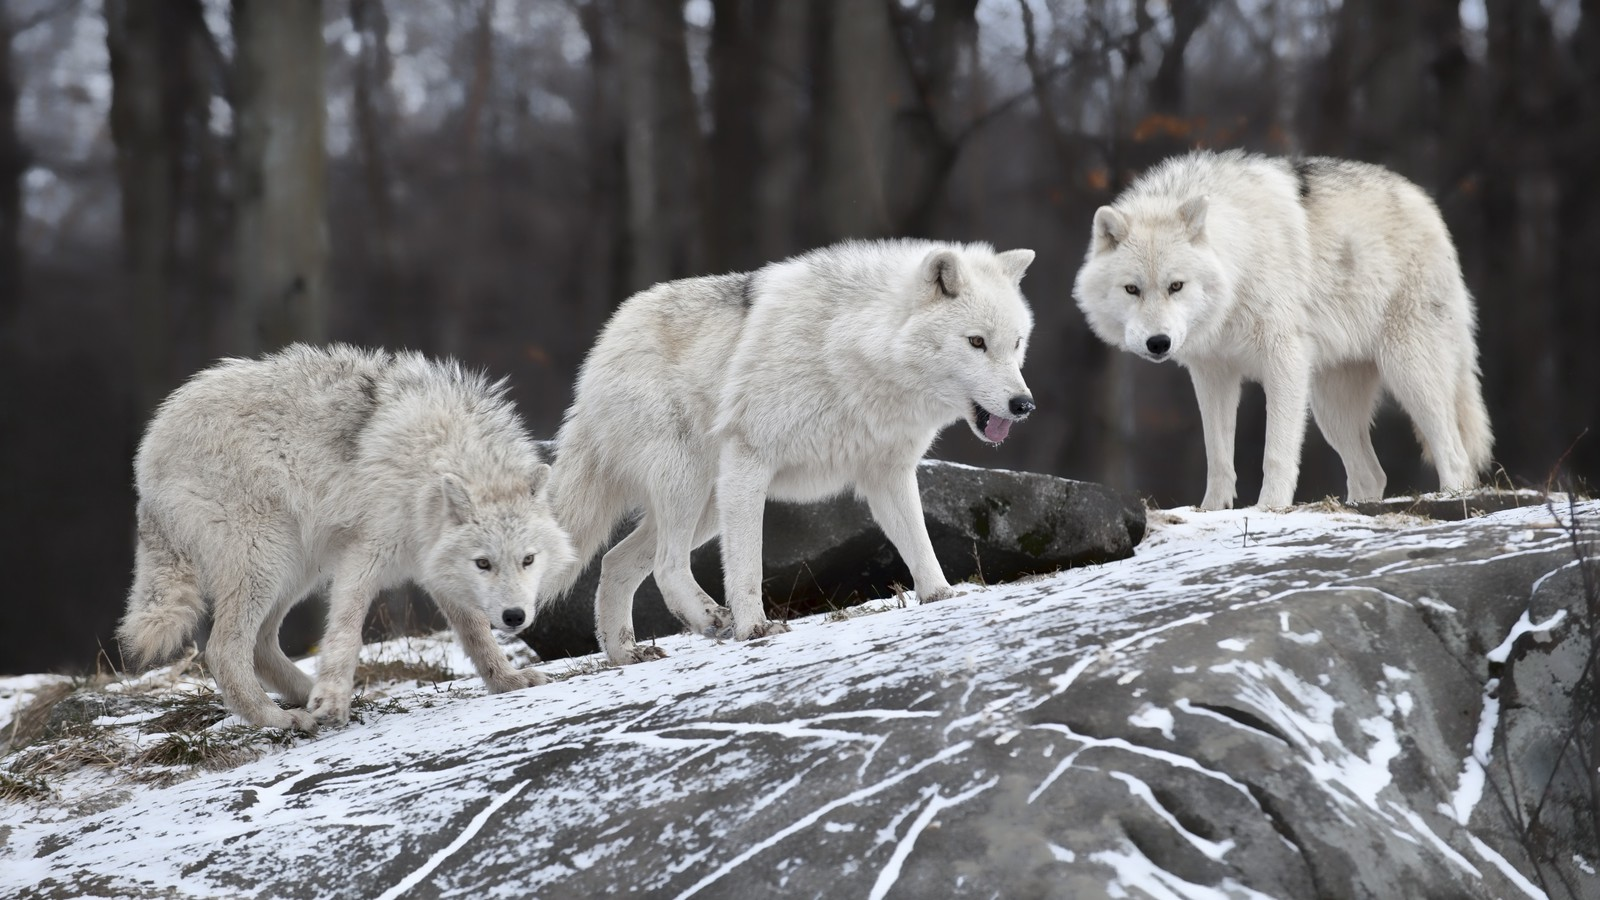 Wild Animal Wolf Wallpapers Hd 51074 Wallpaper: Nature Animals White Wolf Wolves Wallpaper